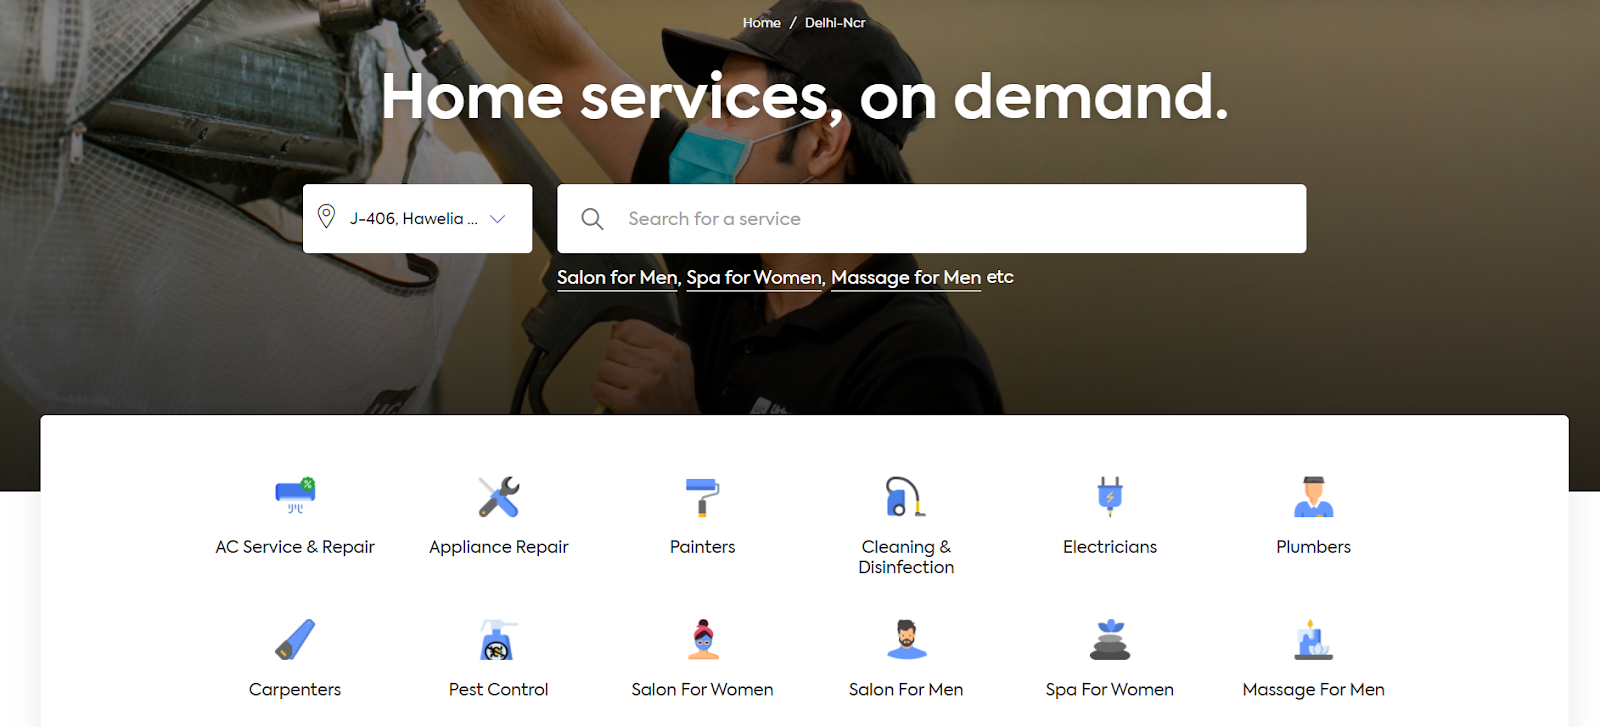 The image shows the homepage of Urban Company and all the services they offer